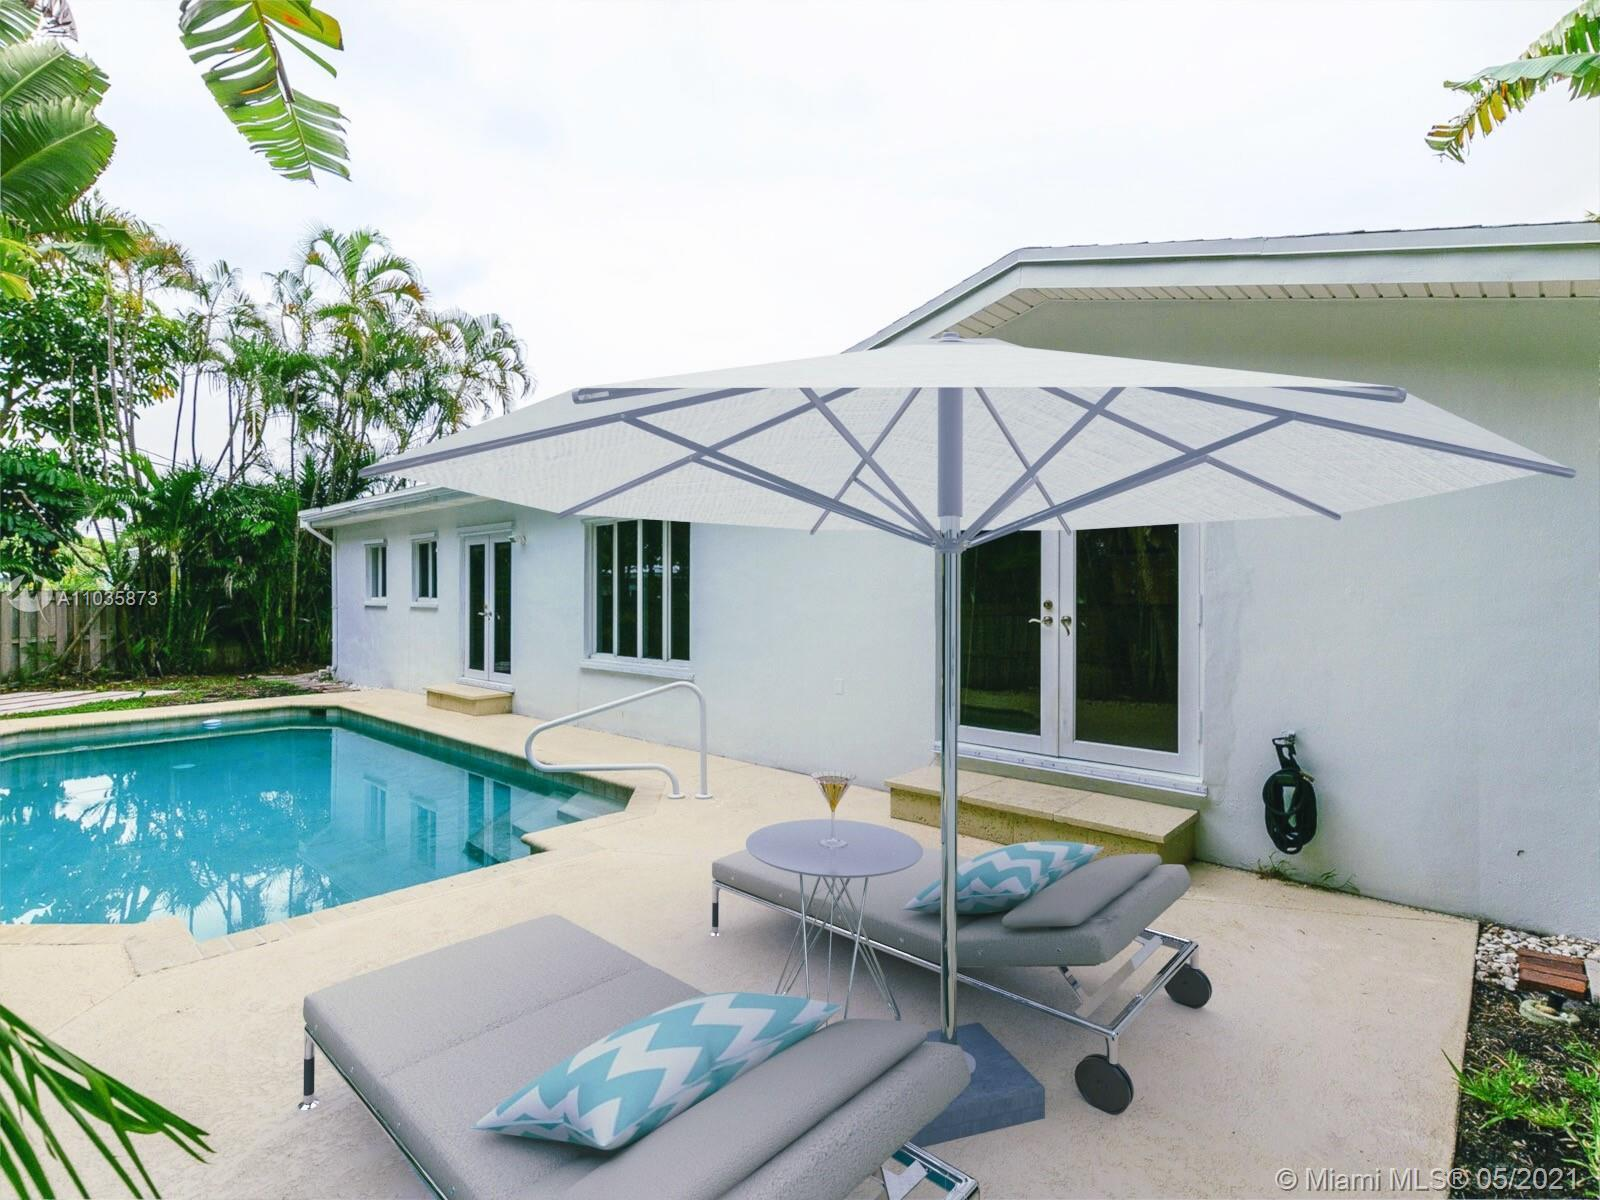 Amazing opportunity to purchase oversized 3/2 pool home located in the prime area of Boca Villas. On